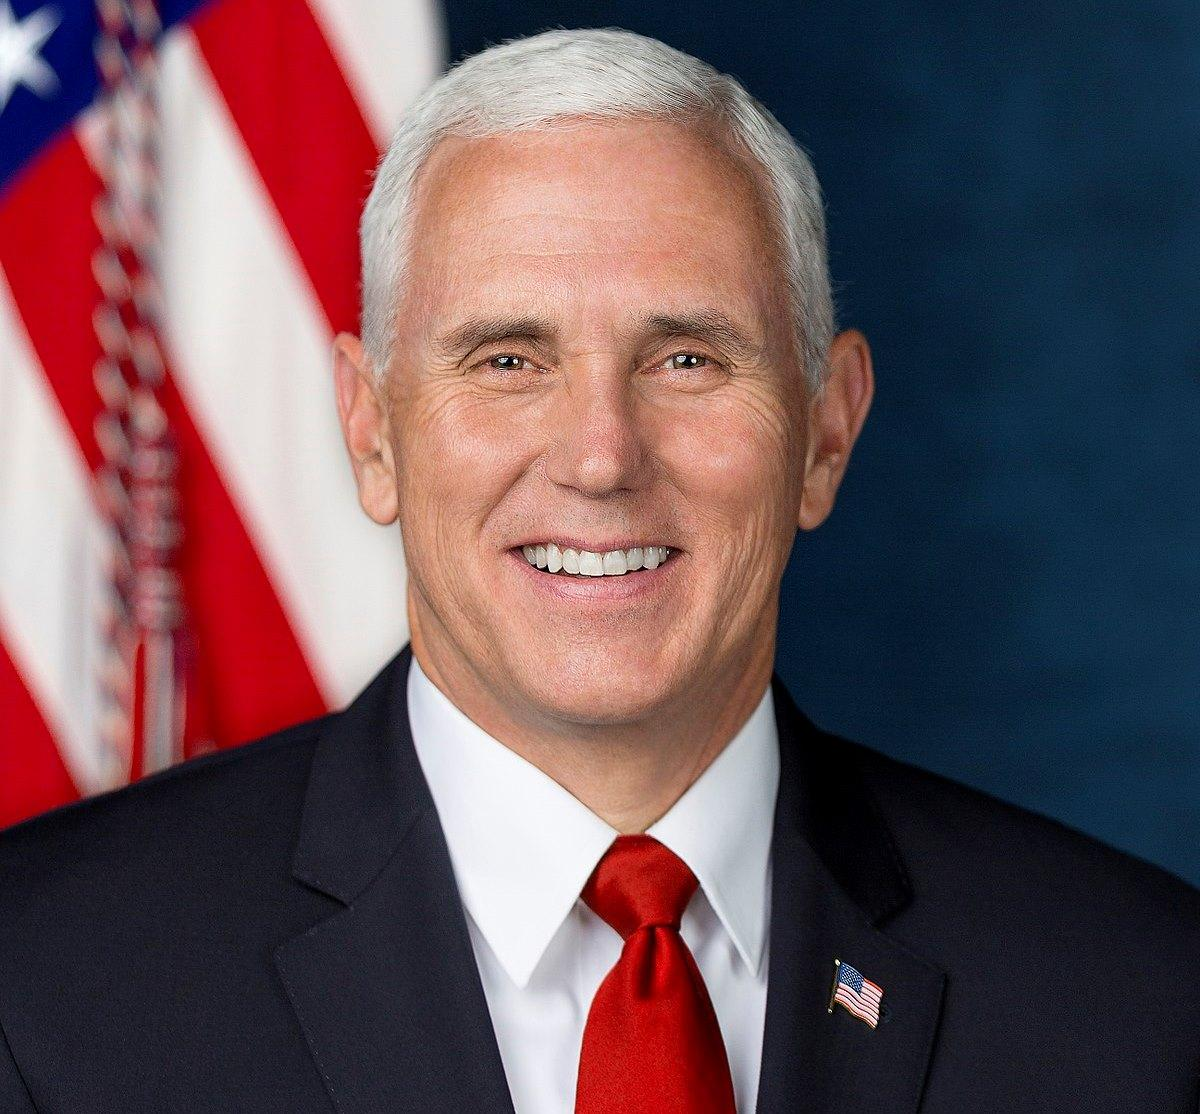 Mike Pence delivering graduation address at Hillsdale College